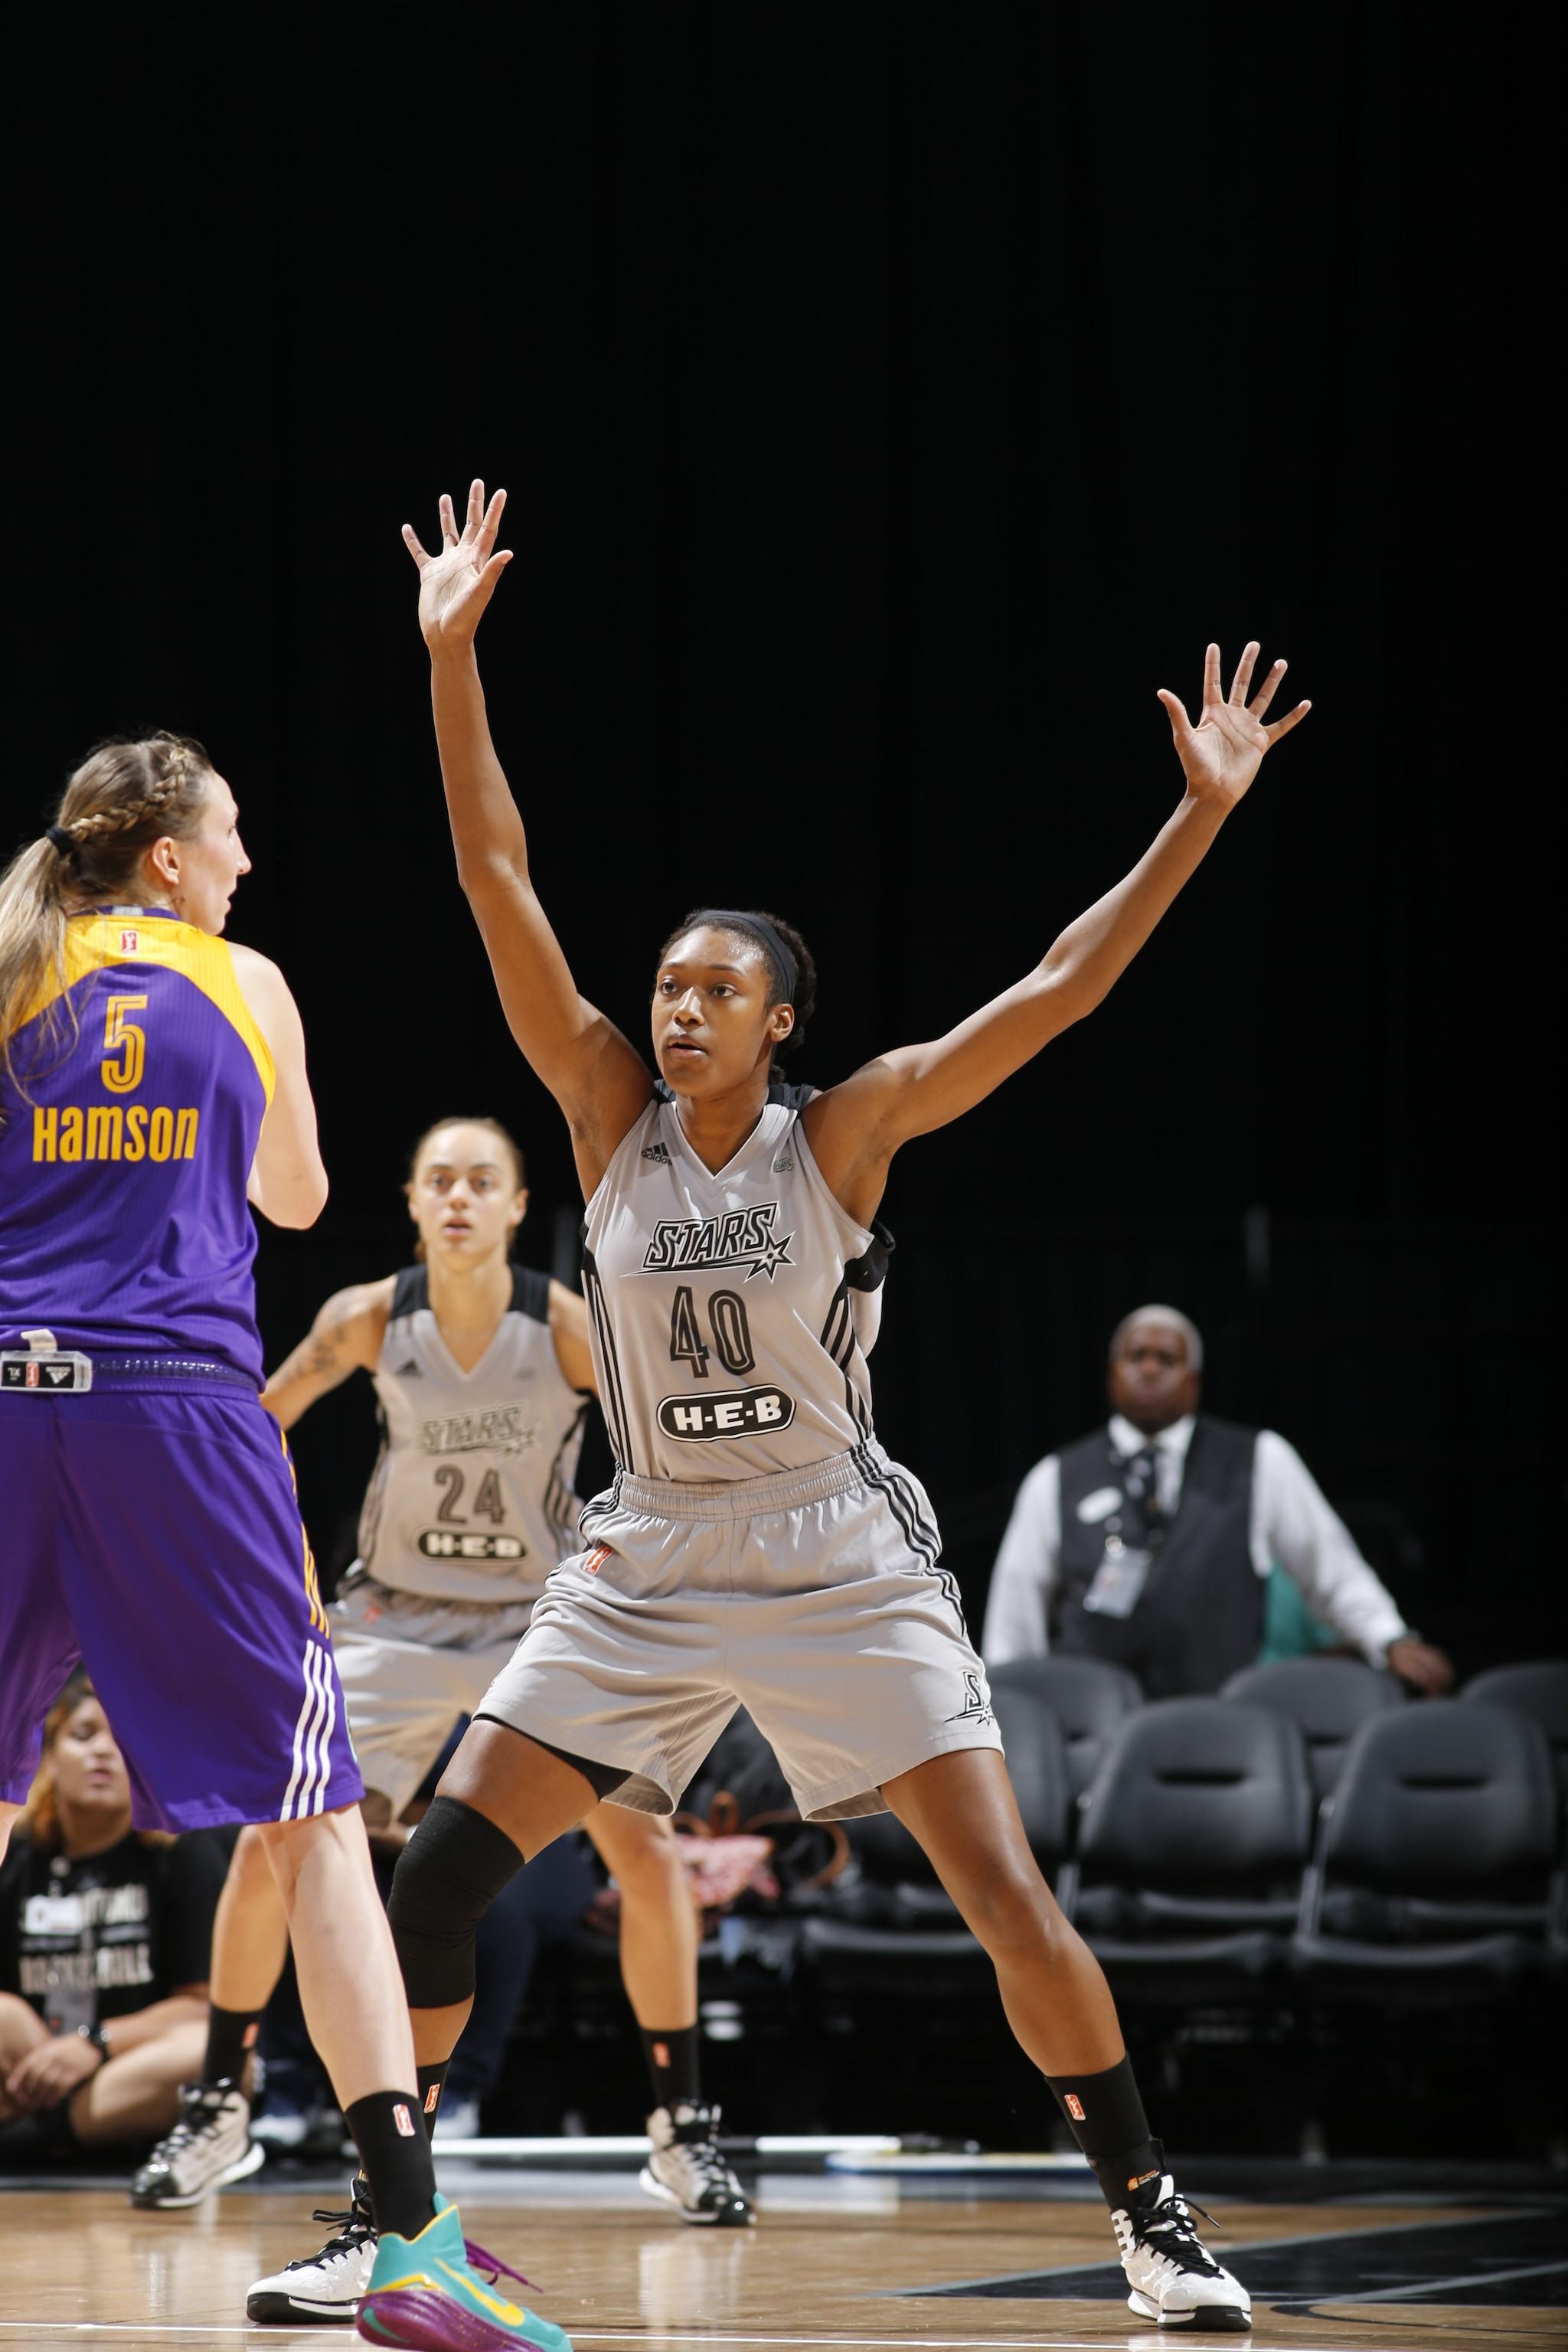 SAN ANTONIO, TX - MAY 9: Kayla Alexander #40 of the San Antonio Stars plays defense against the Los Angeles Sparks on May 9, 2016 at the AT&T Center in San Antonio, Texas. NOTE TO USER: User expressly acknowledges and agrees that, by downloading and or using this photograph, user is consenting to the terms and conditions of the Getty Images License Agreement. Mandatory Copyright Notice: Copyright 2016 NBAE (Photos by Chris Covatta/NBAE via Getty Images)